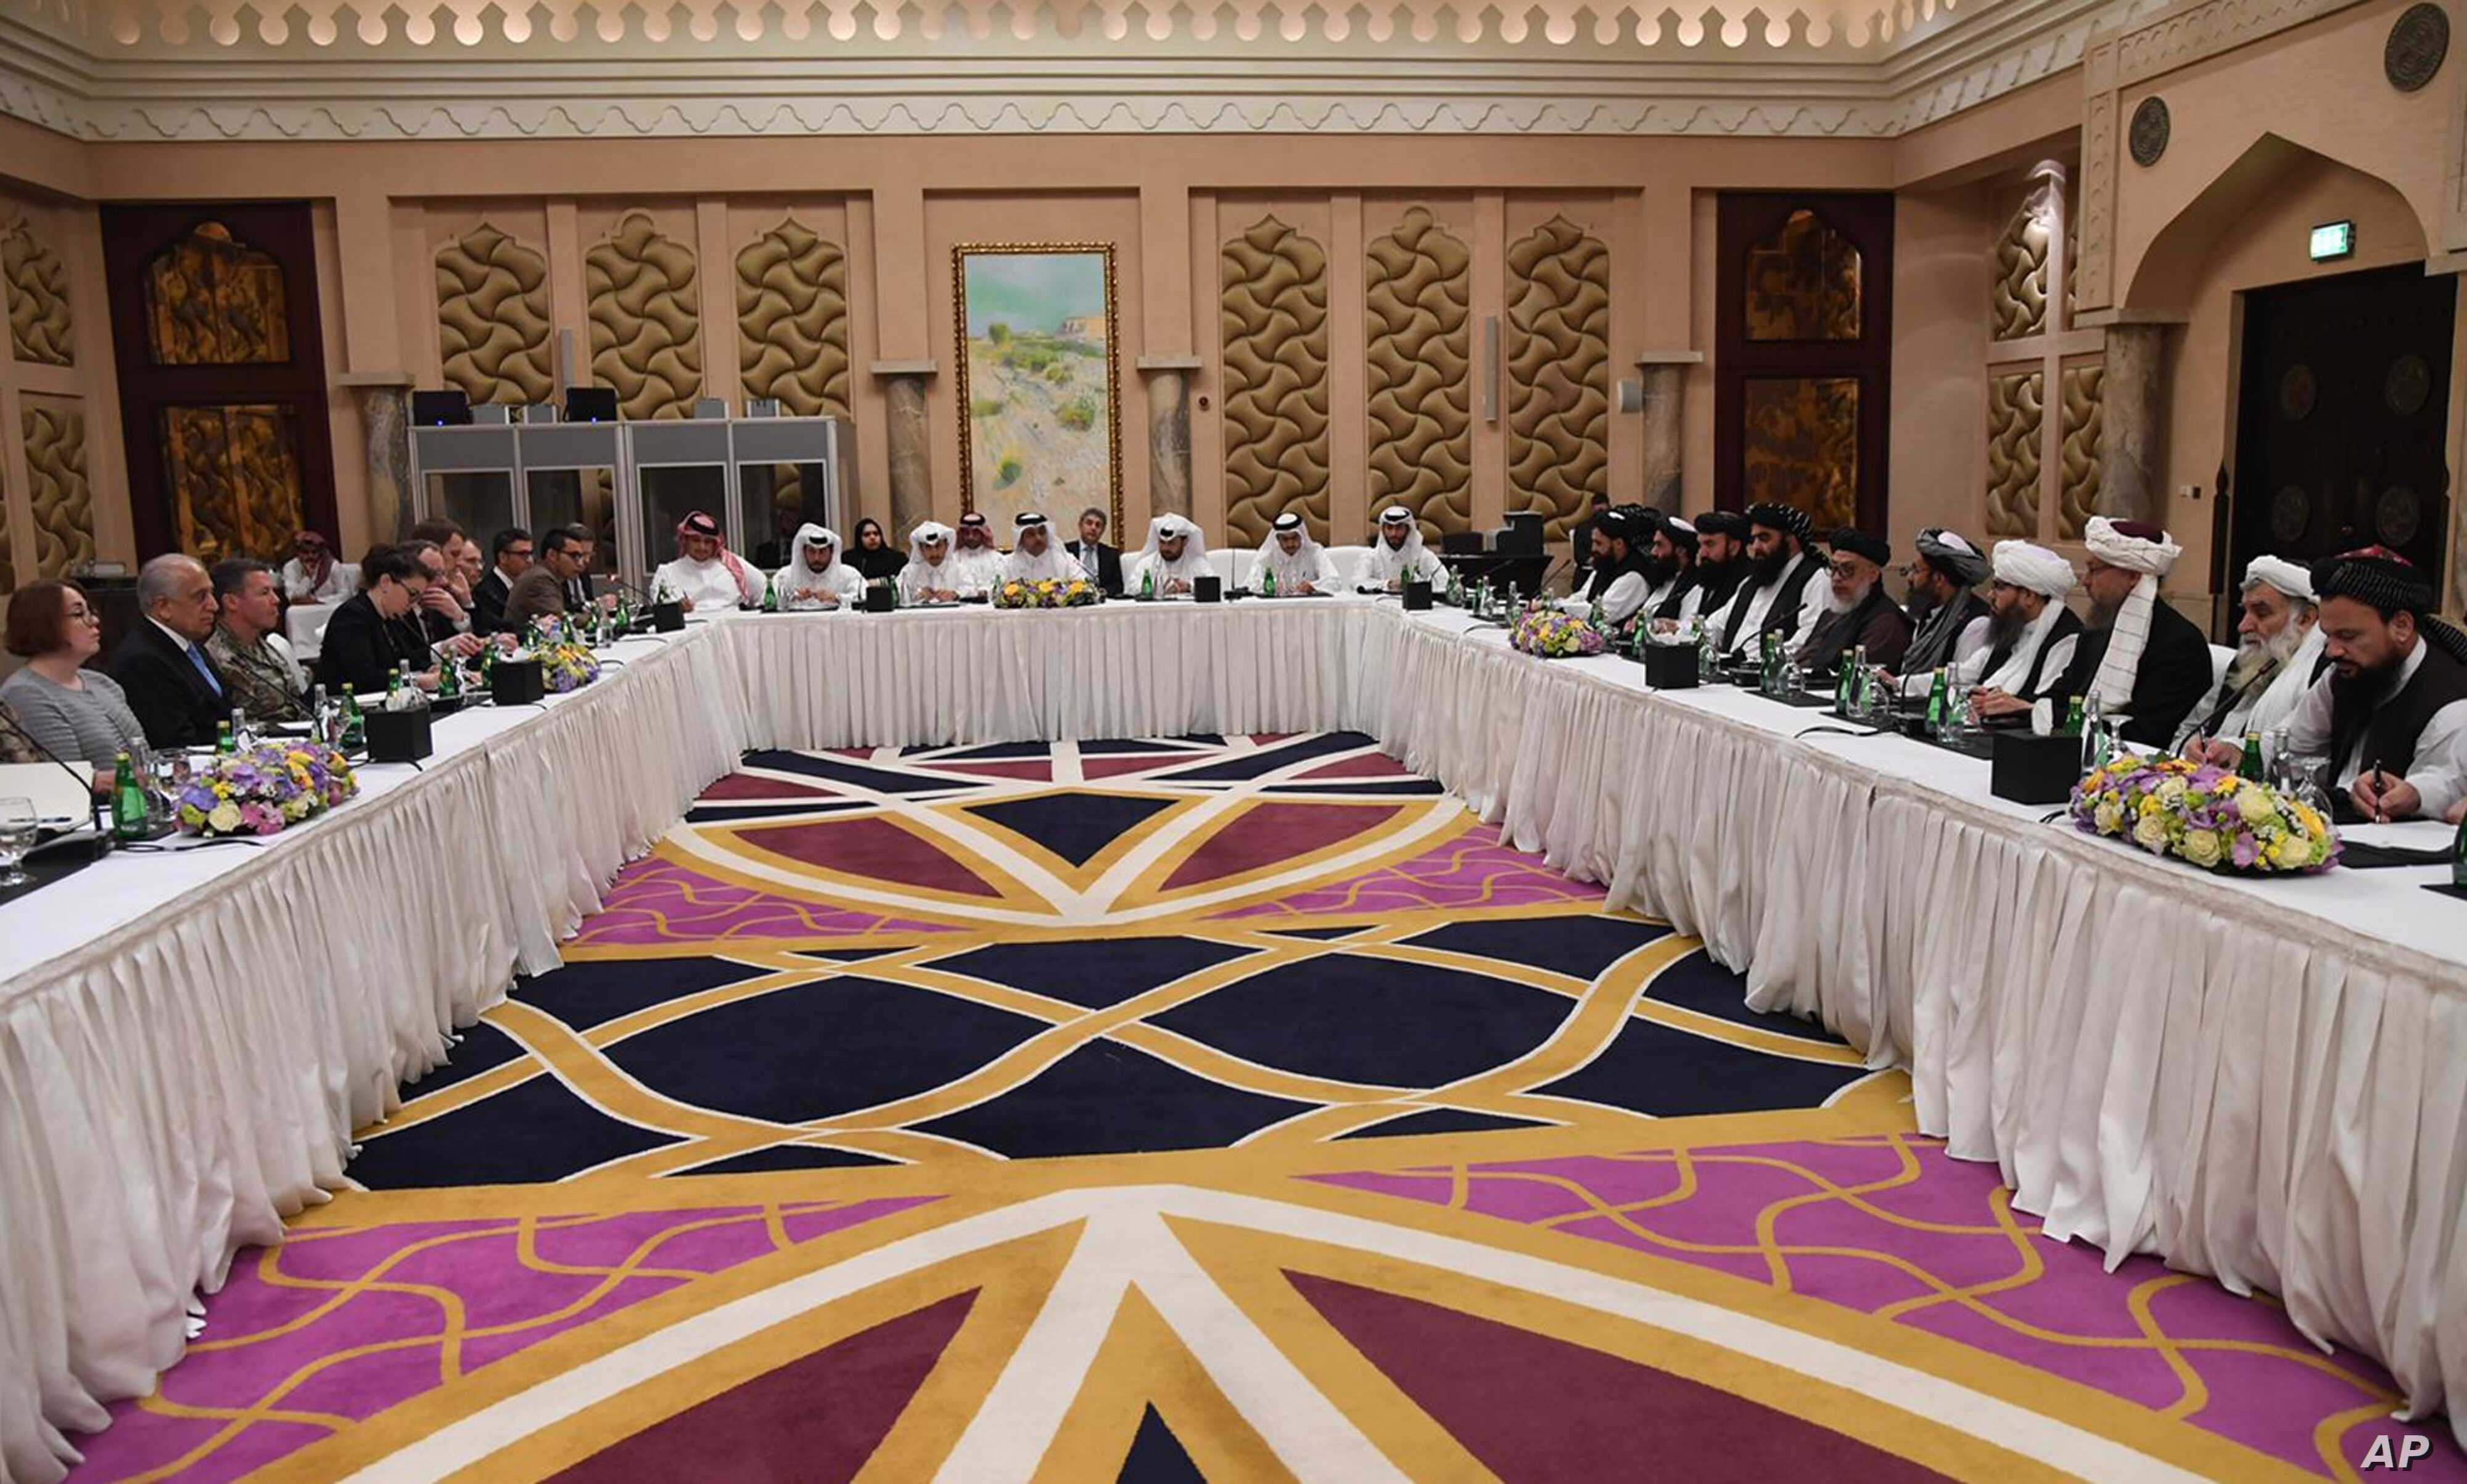 This photo released by Qatar's Ministry of Foreign Affairs shows Qatari, U.S. and Taliban officials conferring in an undisclosed place in Doha, Feb. 25, 2019, ahead of the latest round of talks with the insurgents aimed at ending the Afghan war.